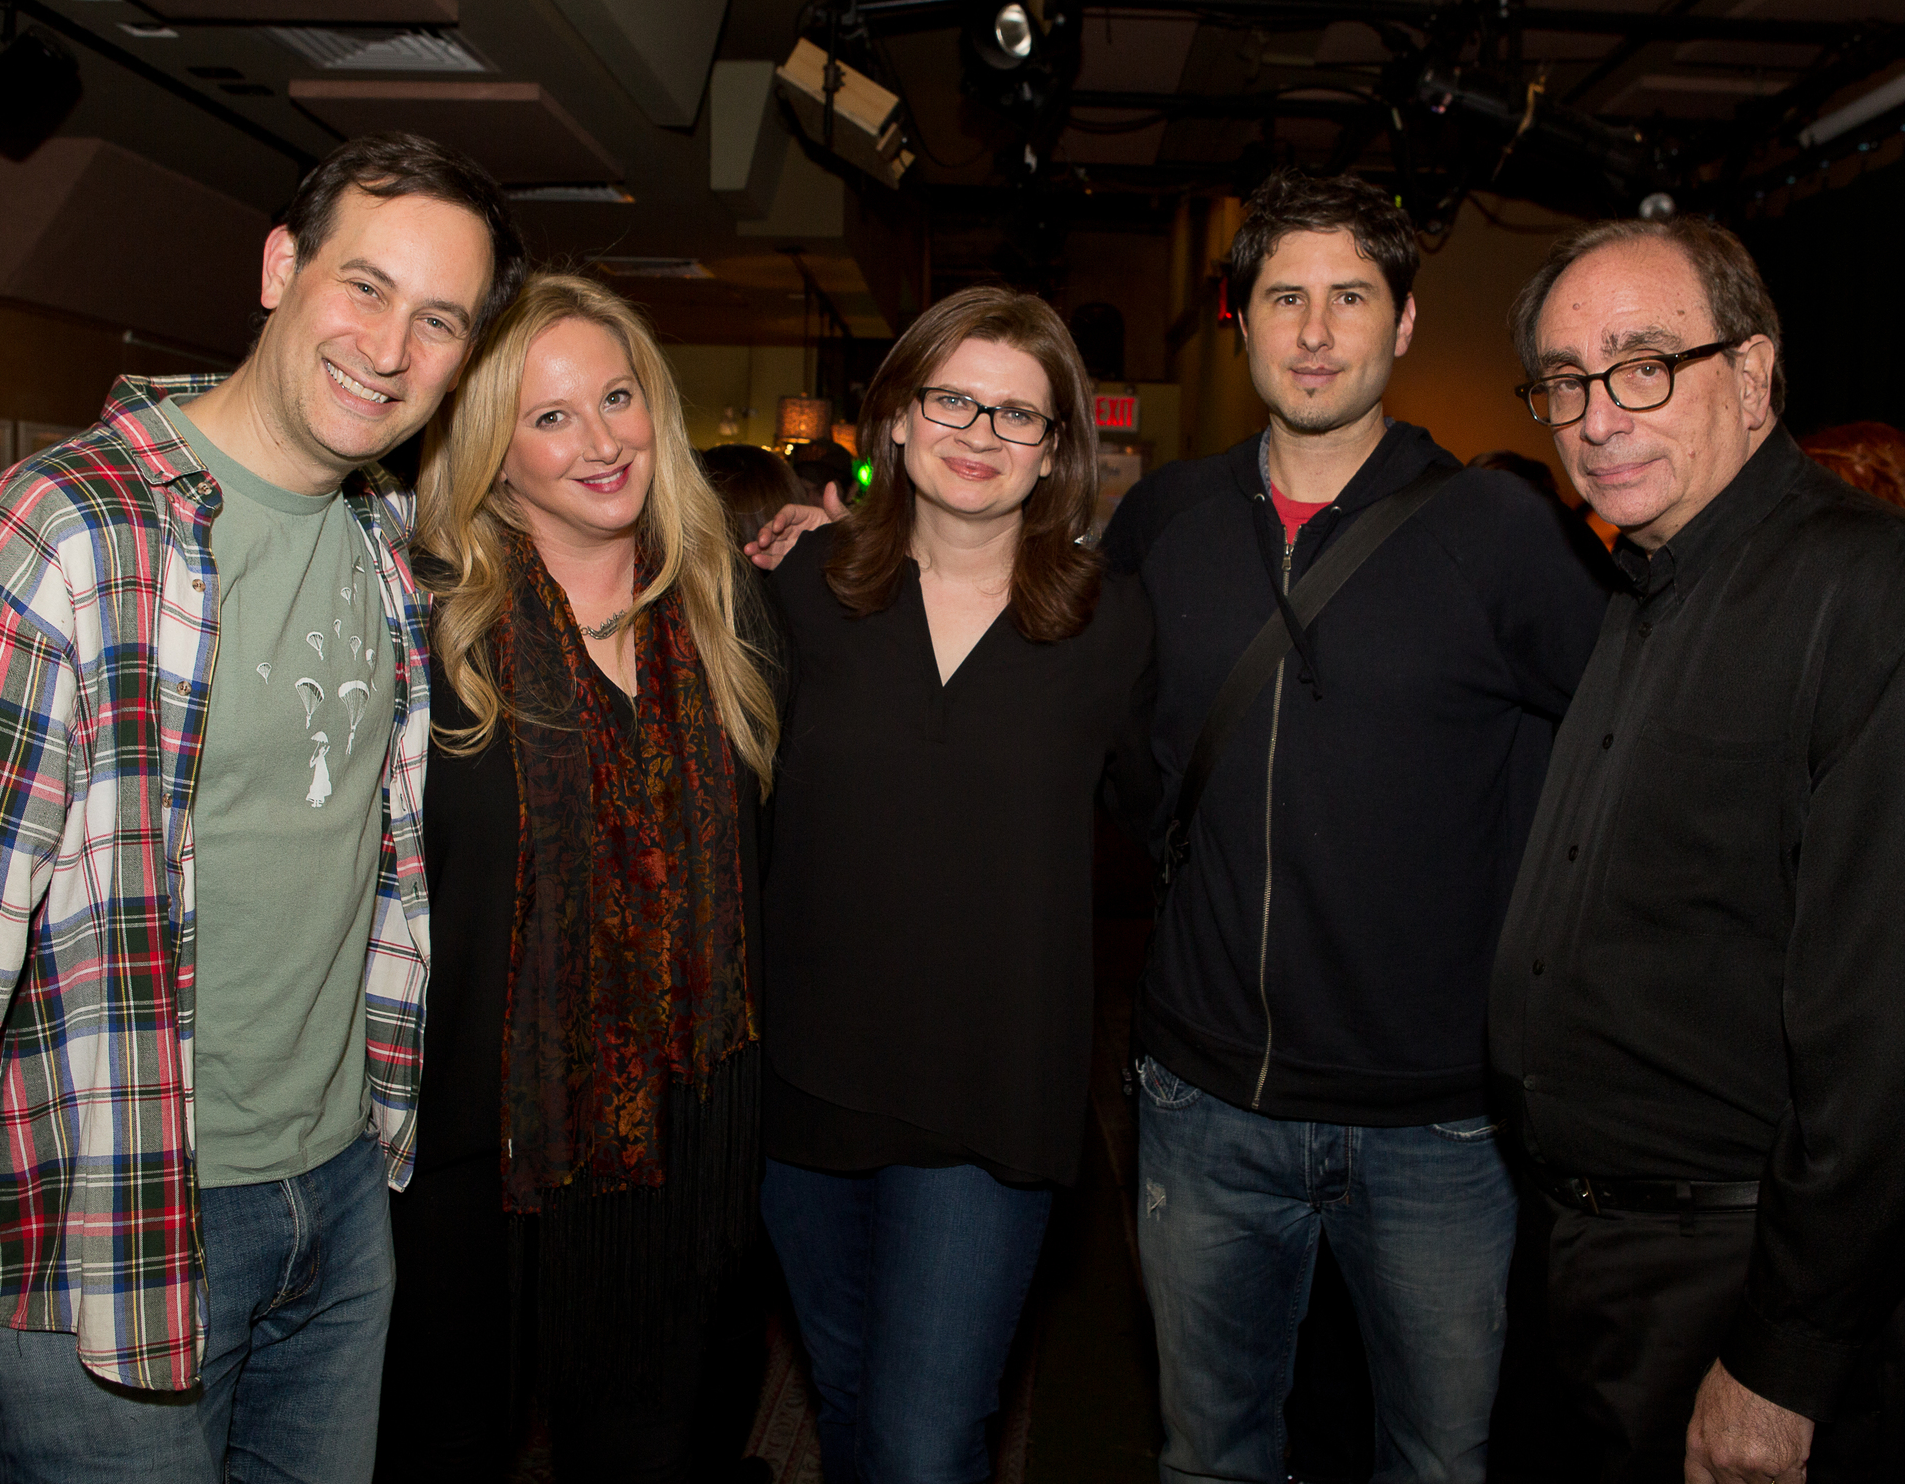 The cast of our first show, March 2015 : David Levithan, Leigh Bardugo, Emmy Laybourne, Matt De La Peña, and RL Stine.